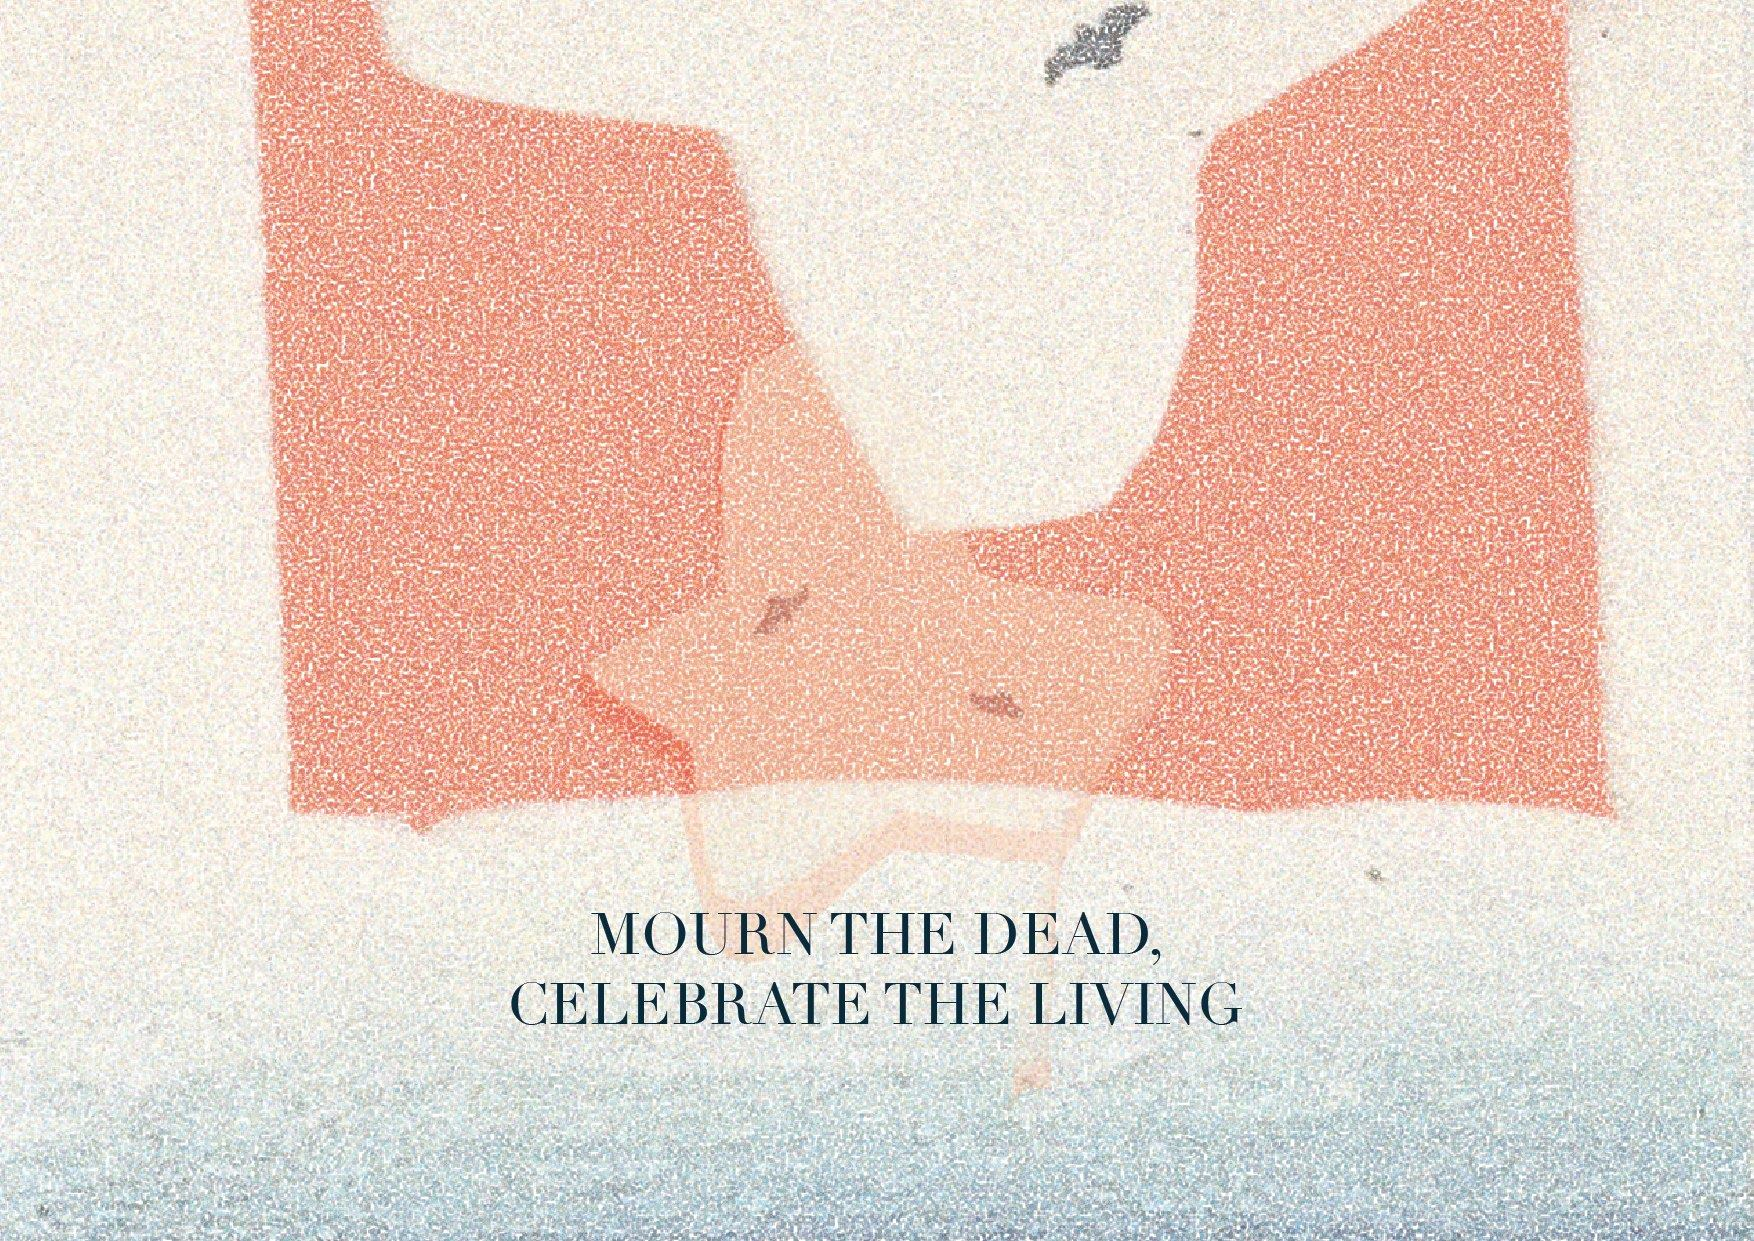 Mourn the Dead, Celebrate the Living // Fundraising